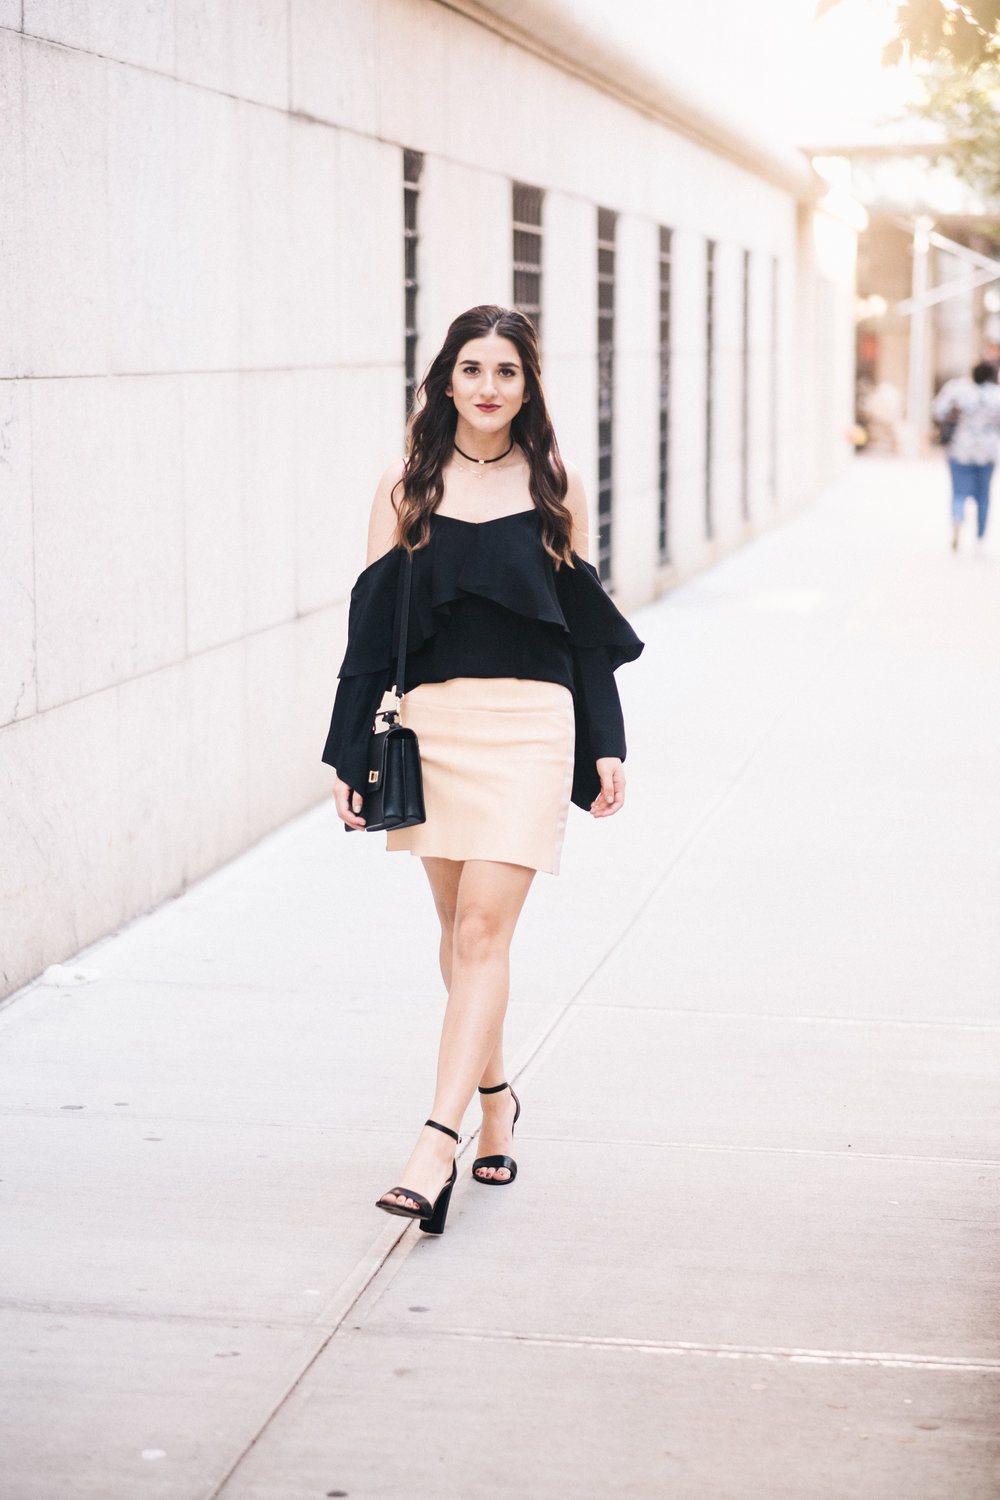 The+Perfect+Everyday+Bag+Henri+Bendel+Louboutins+&+Love+Fashion+Blog+Esther+Santer+NYC+Street+Style+Blogger+Outfit+OOTD+Trendy+Jay+Godfrey+Black+Cold+Shoulder+Top+Pink+Pleather+Skirt+Zara+Ivanka+Trump+Klover+Sandals+Heels+Purse++Inspo+Women+Girl+Hair.jpg